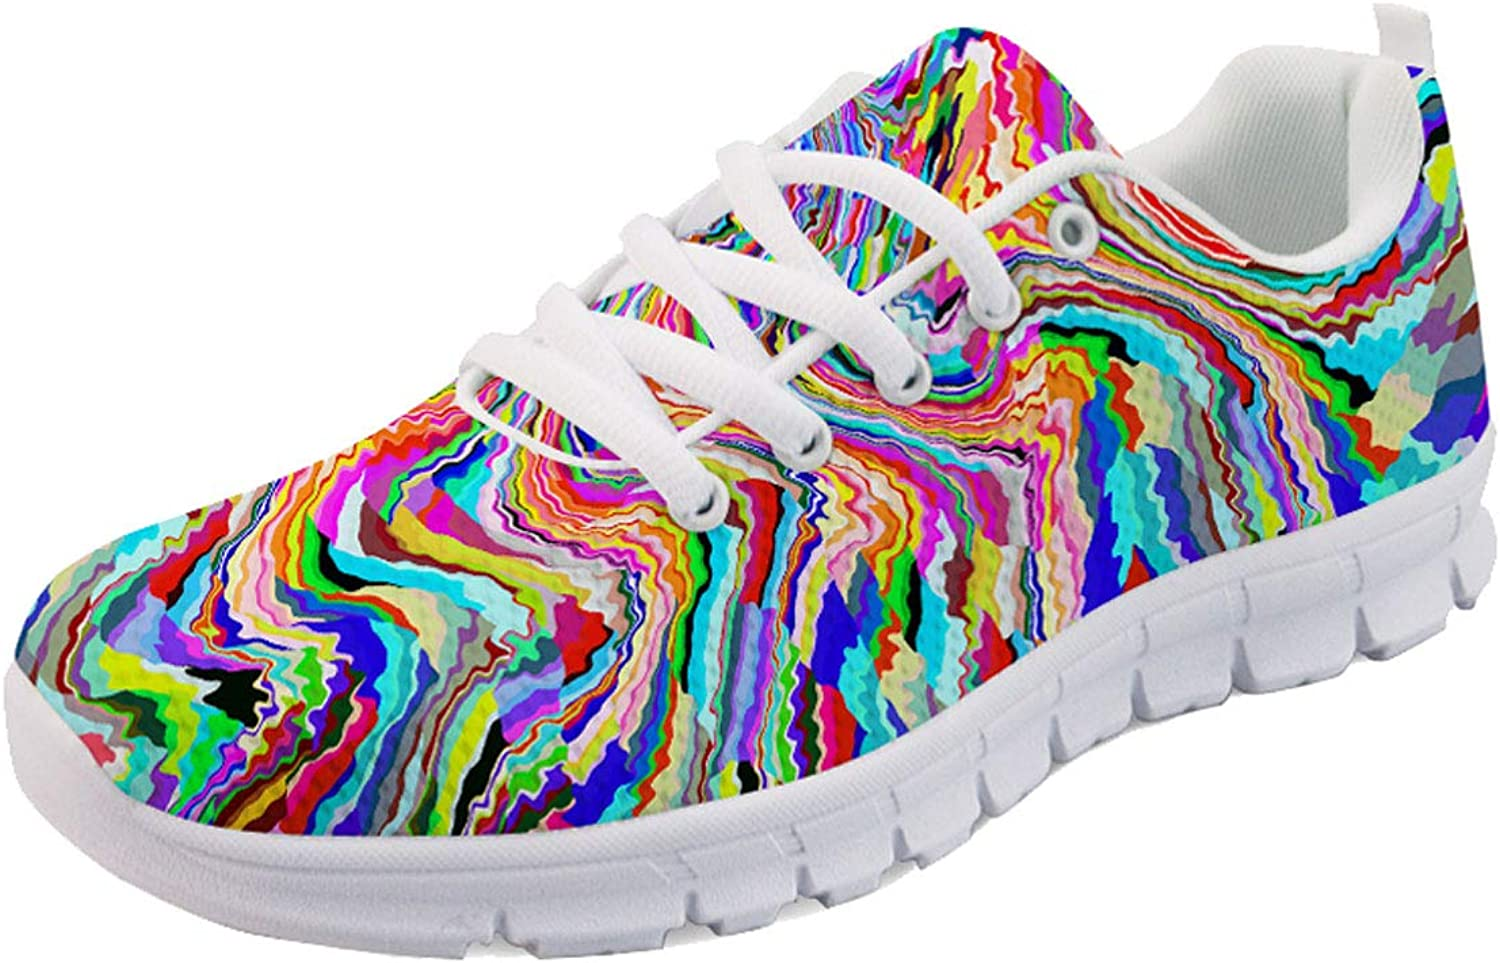 Nopersonality Women's Lightweight Walking shoes Fashion Sneakers colorful Stripe Printing